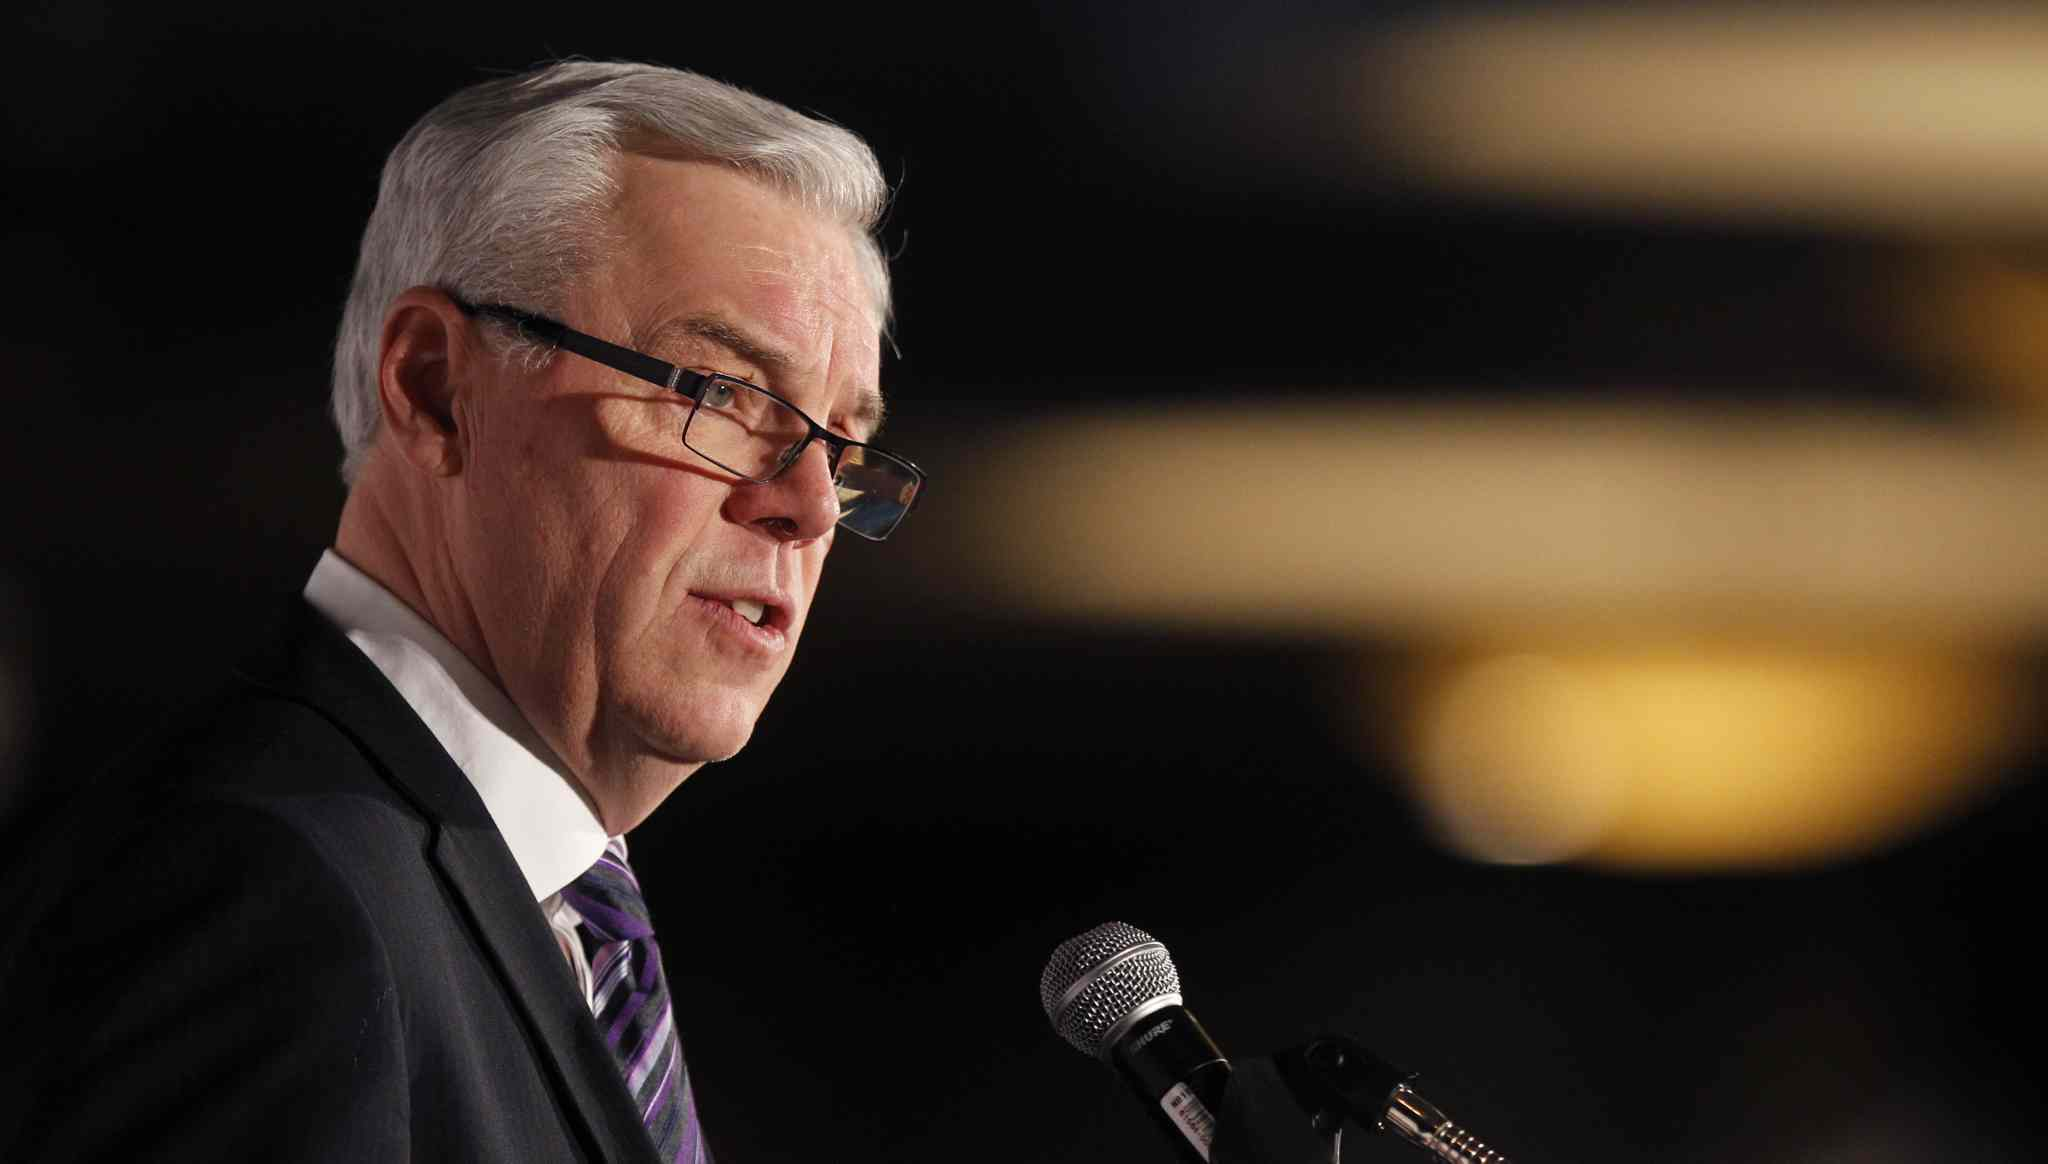 Premier Greg Selinger's popularity is on a sharp decline, according to recent poll.